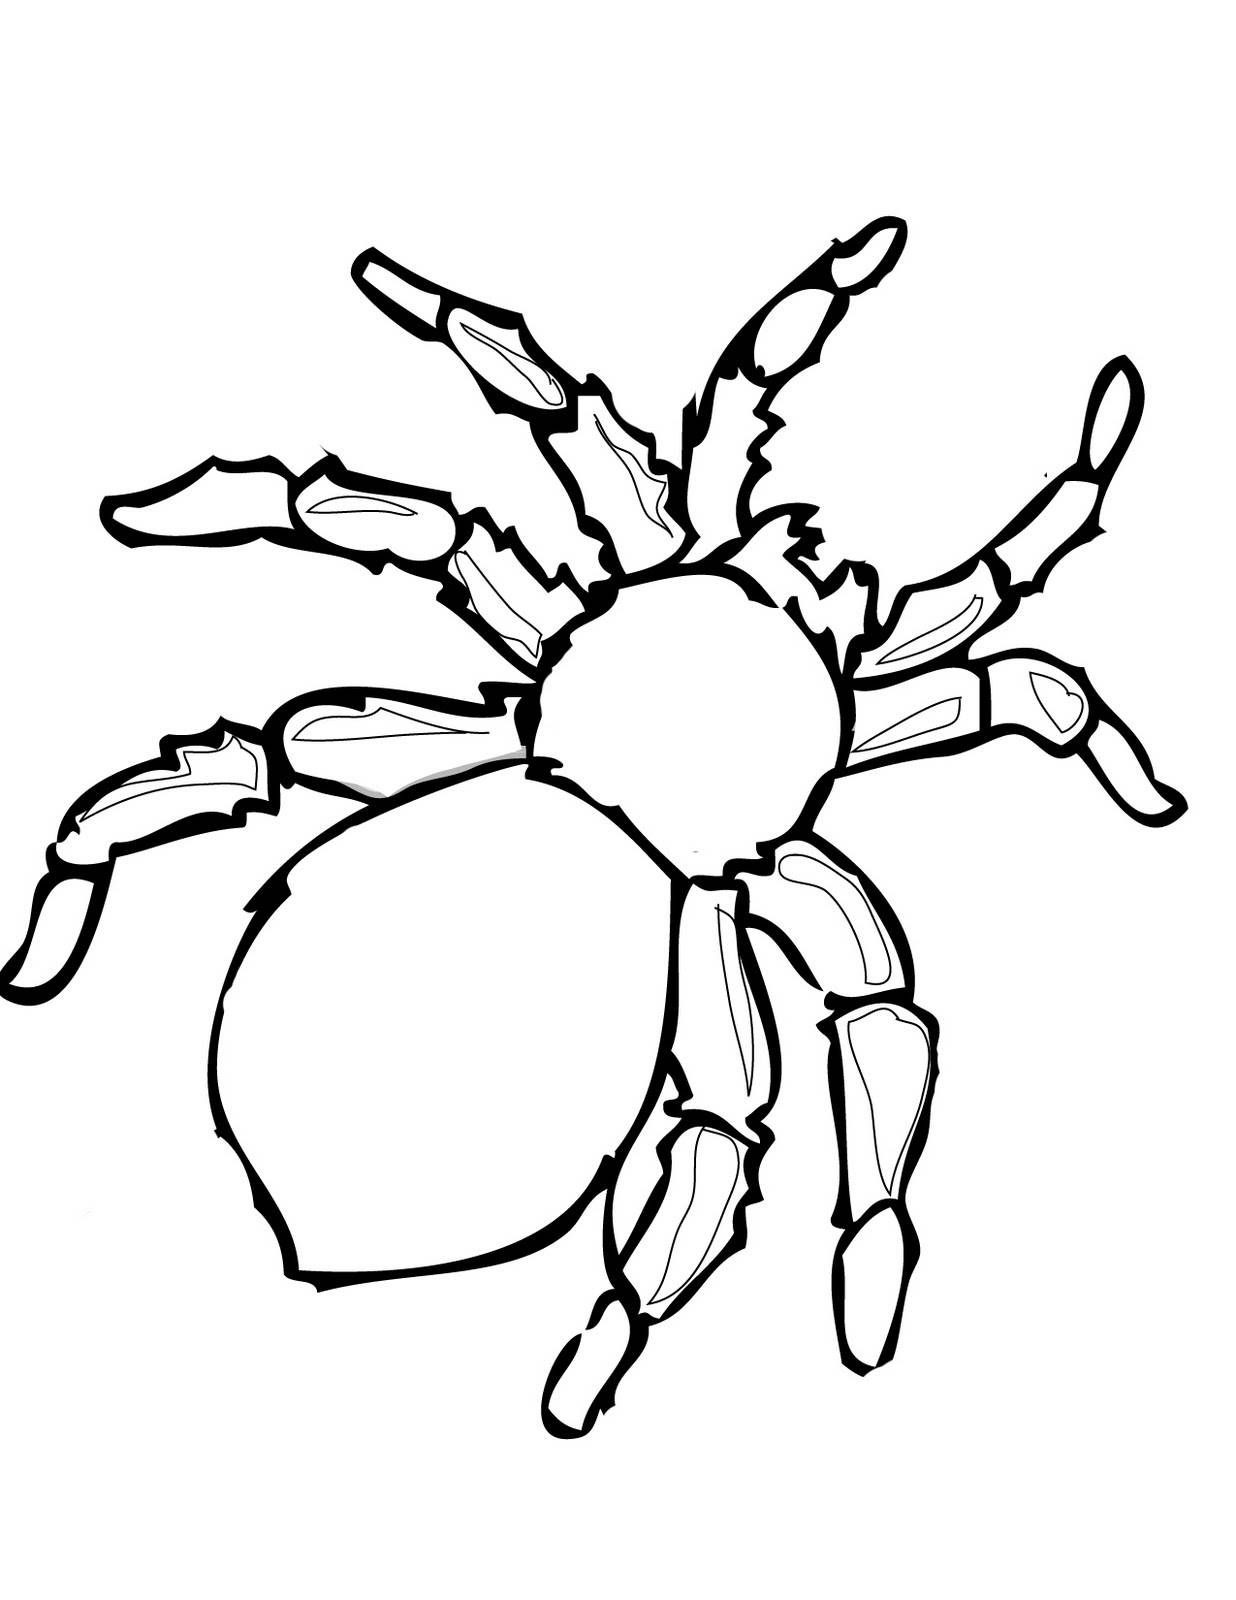 Top Down View of Spider | Creating Thinking | Spider ...